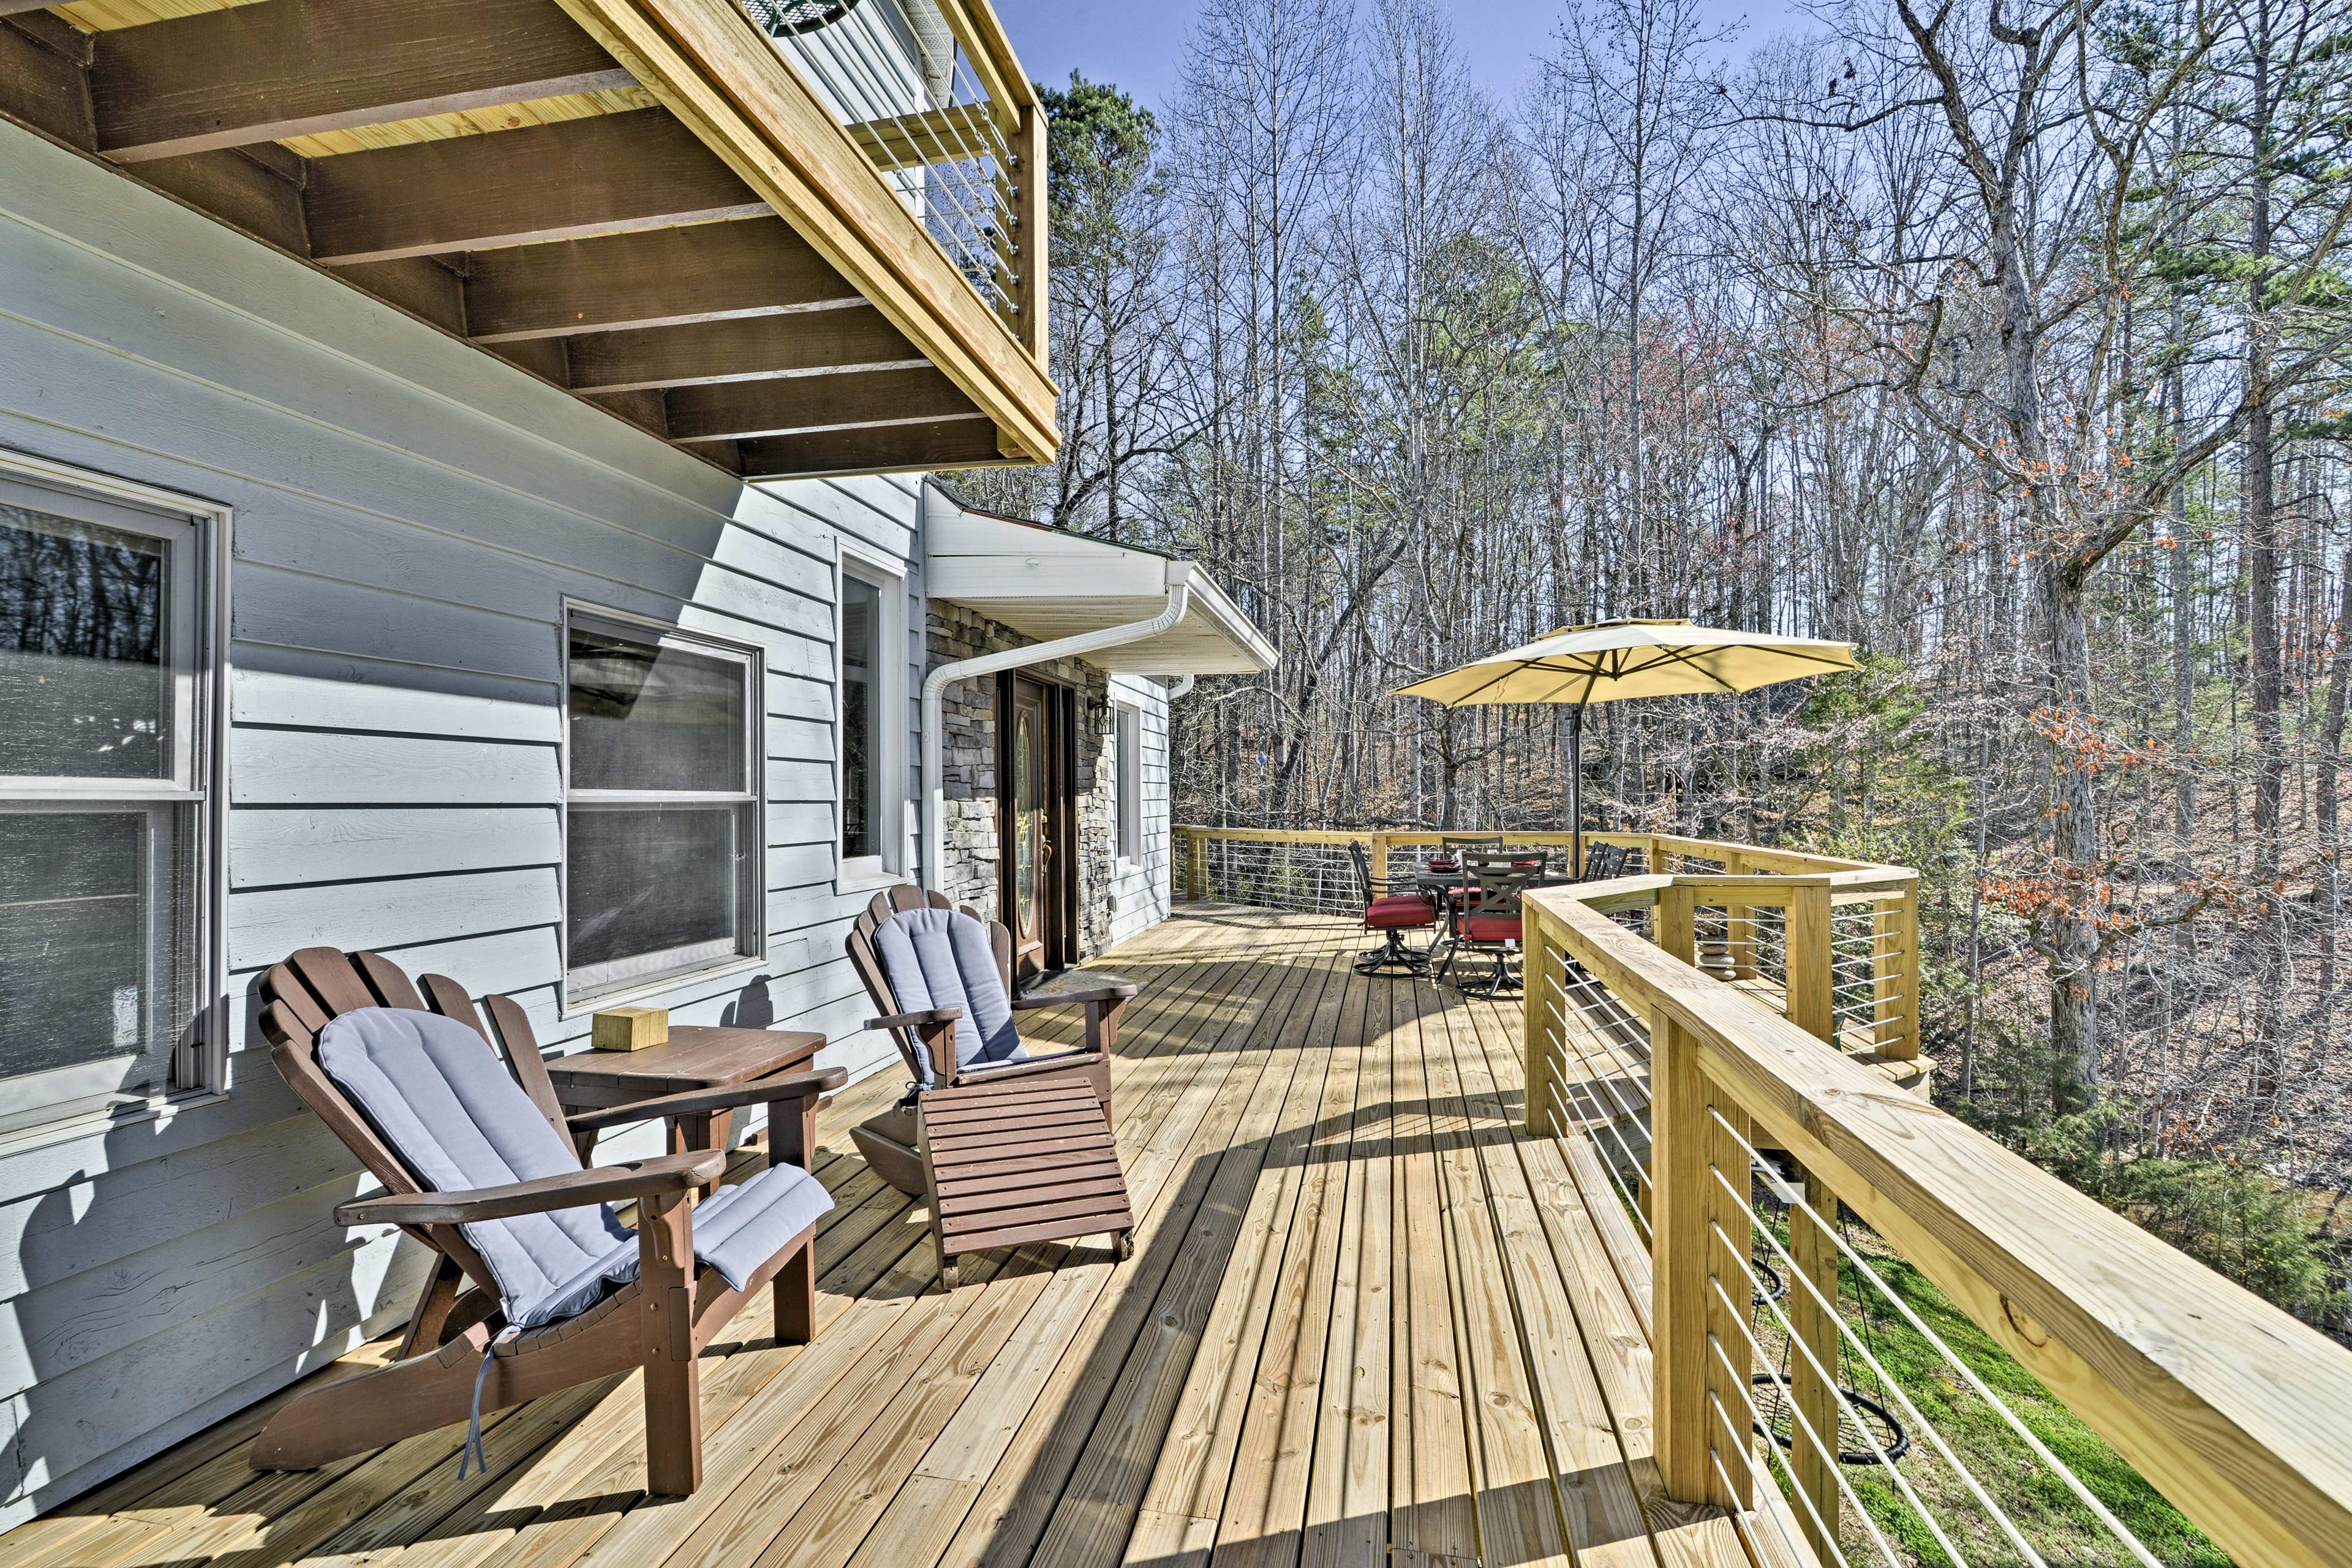 Catch some rays on the 20-foot deck.